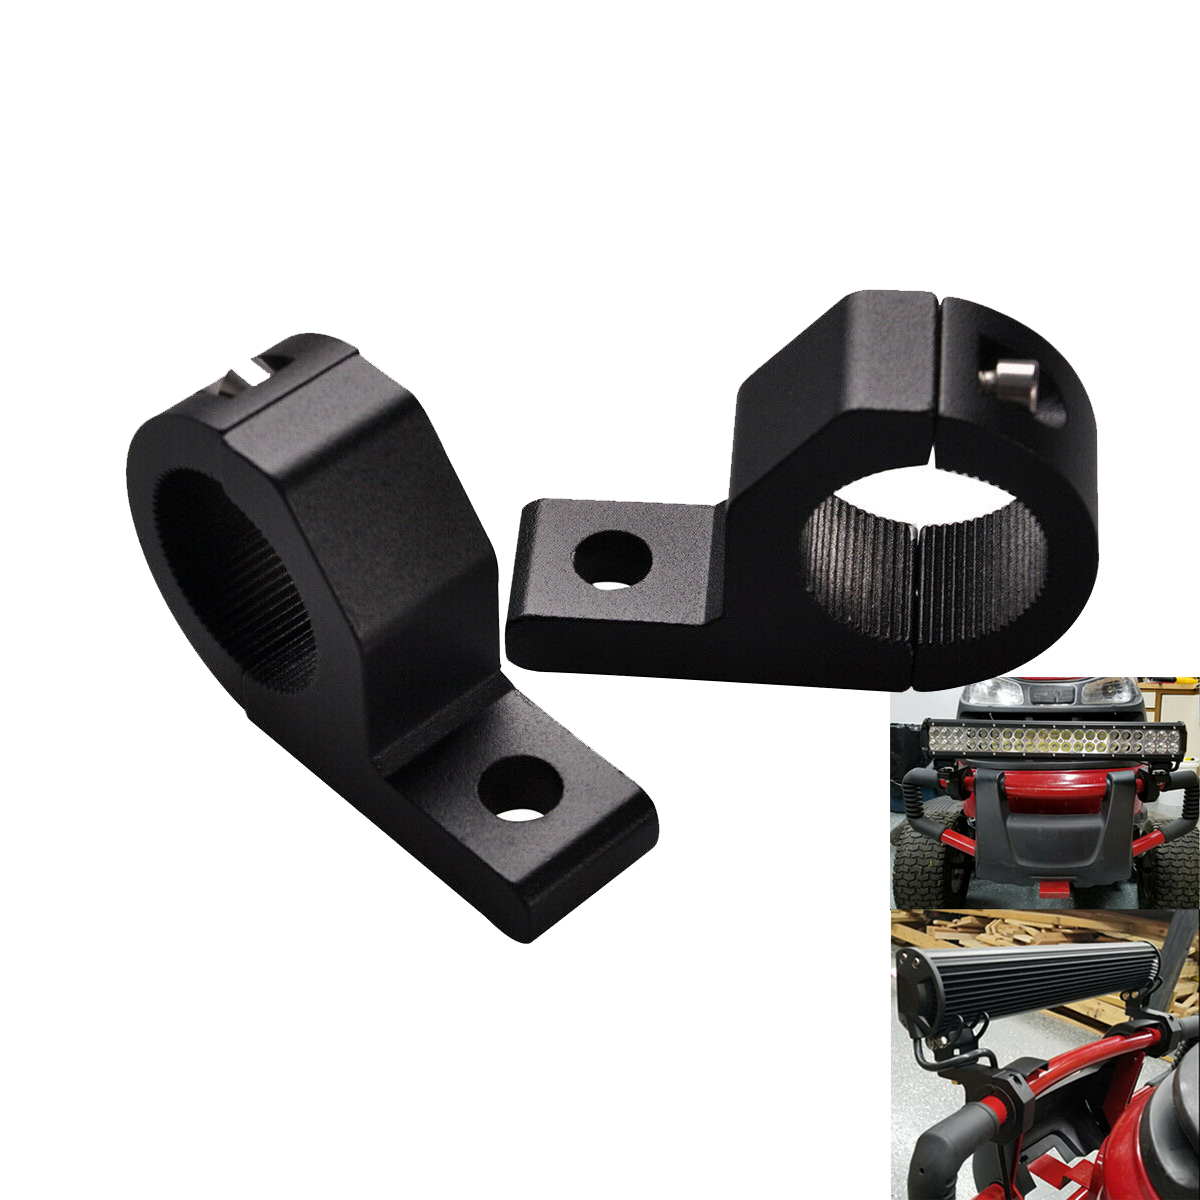 2pcs 1''inch Bar Universal Mount Bracket TUBE CLAMPS For Light Bar Boat,Jeep, Truck, 4x4,Pipe Tude Roll Cage & 2 Size Liners